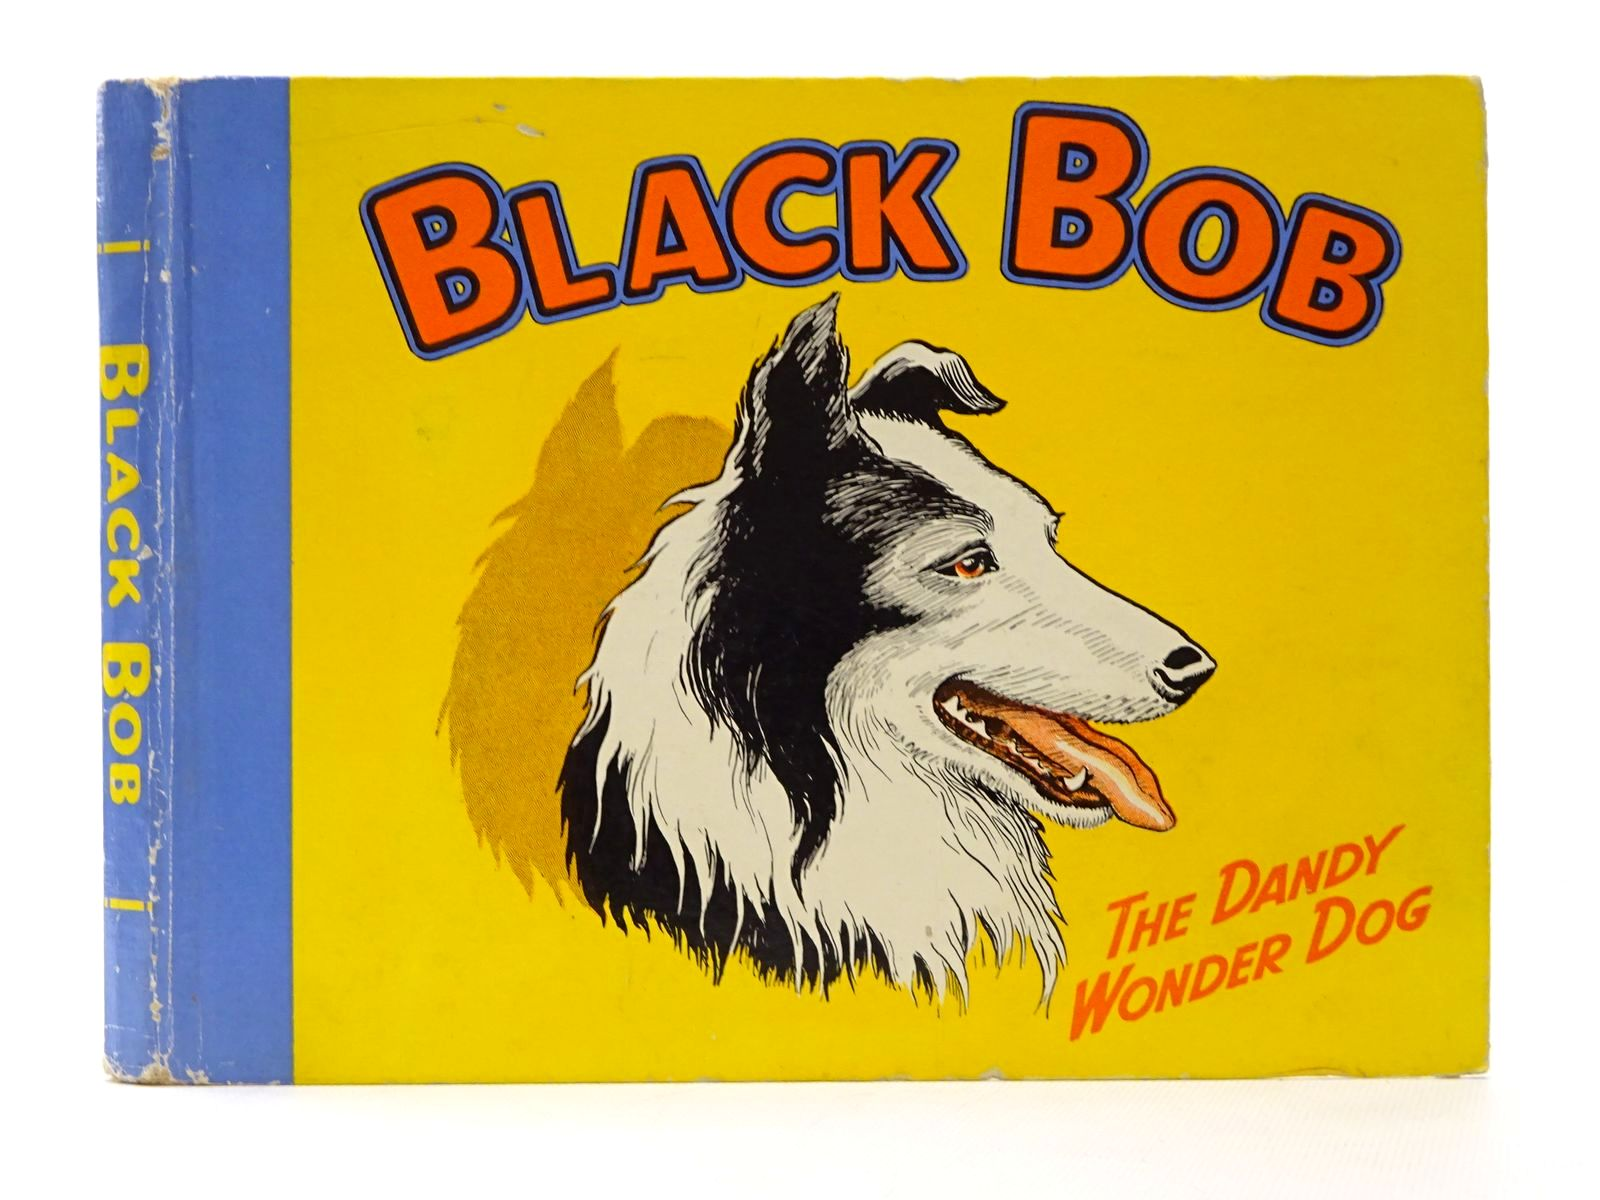 Photo of BLACK BOB THE DANDY WONDER DOG 1955 illustrated by Prout, Jack published by D.C. Thomson & Co Ltd. (STOCK CODE: 1317248)  for sale by Stella & Rose's Books